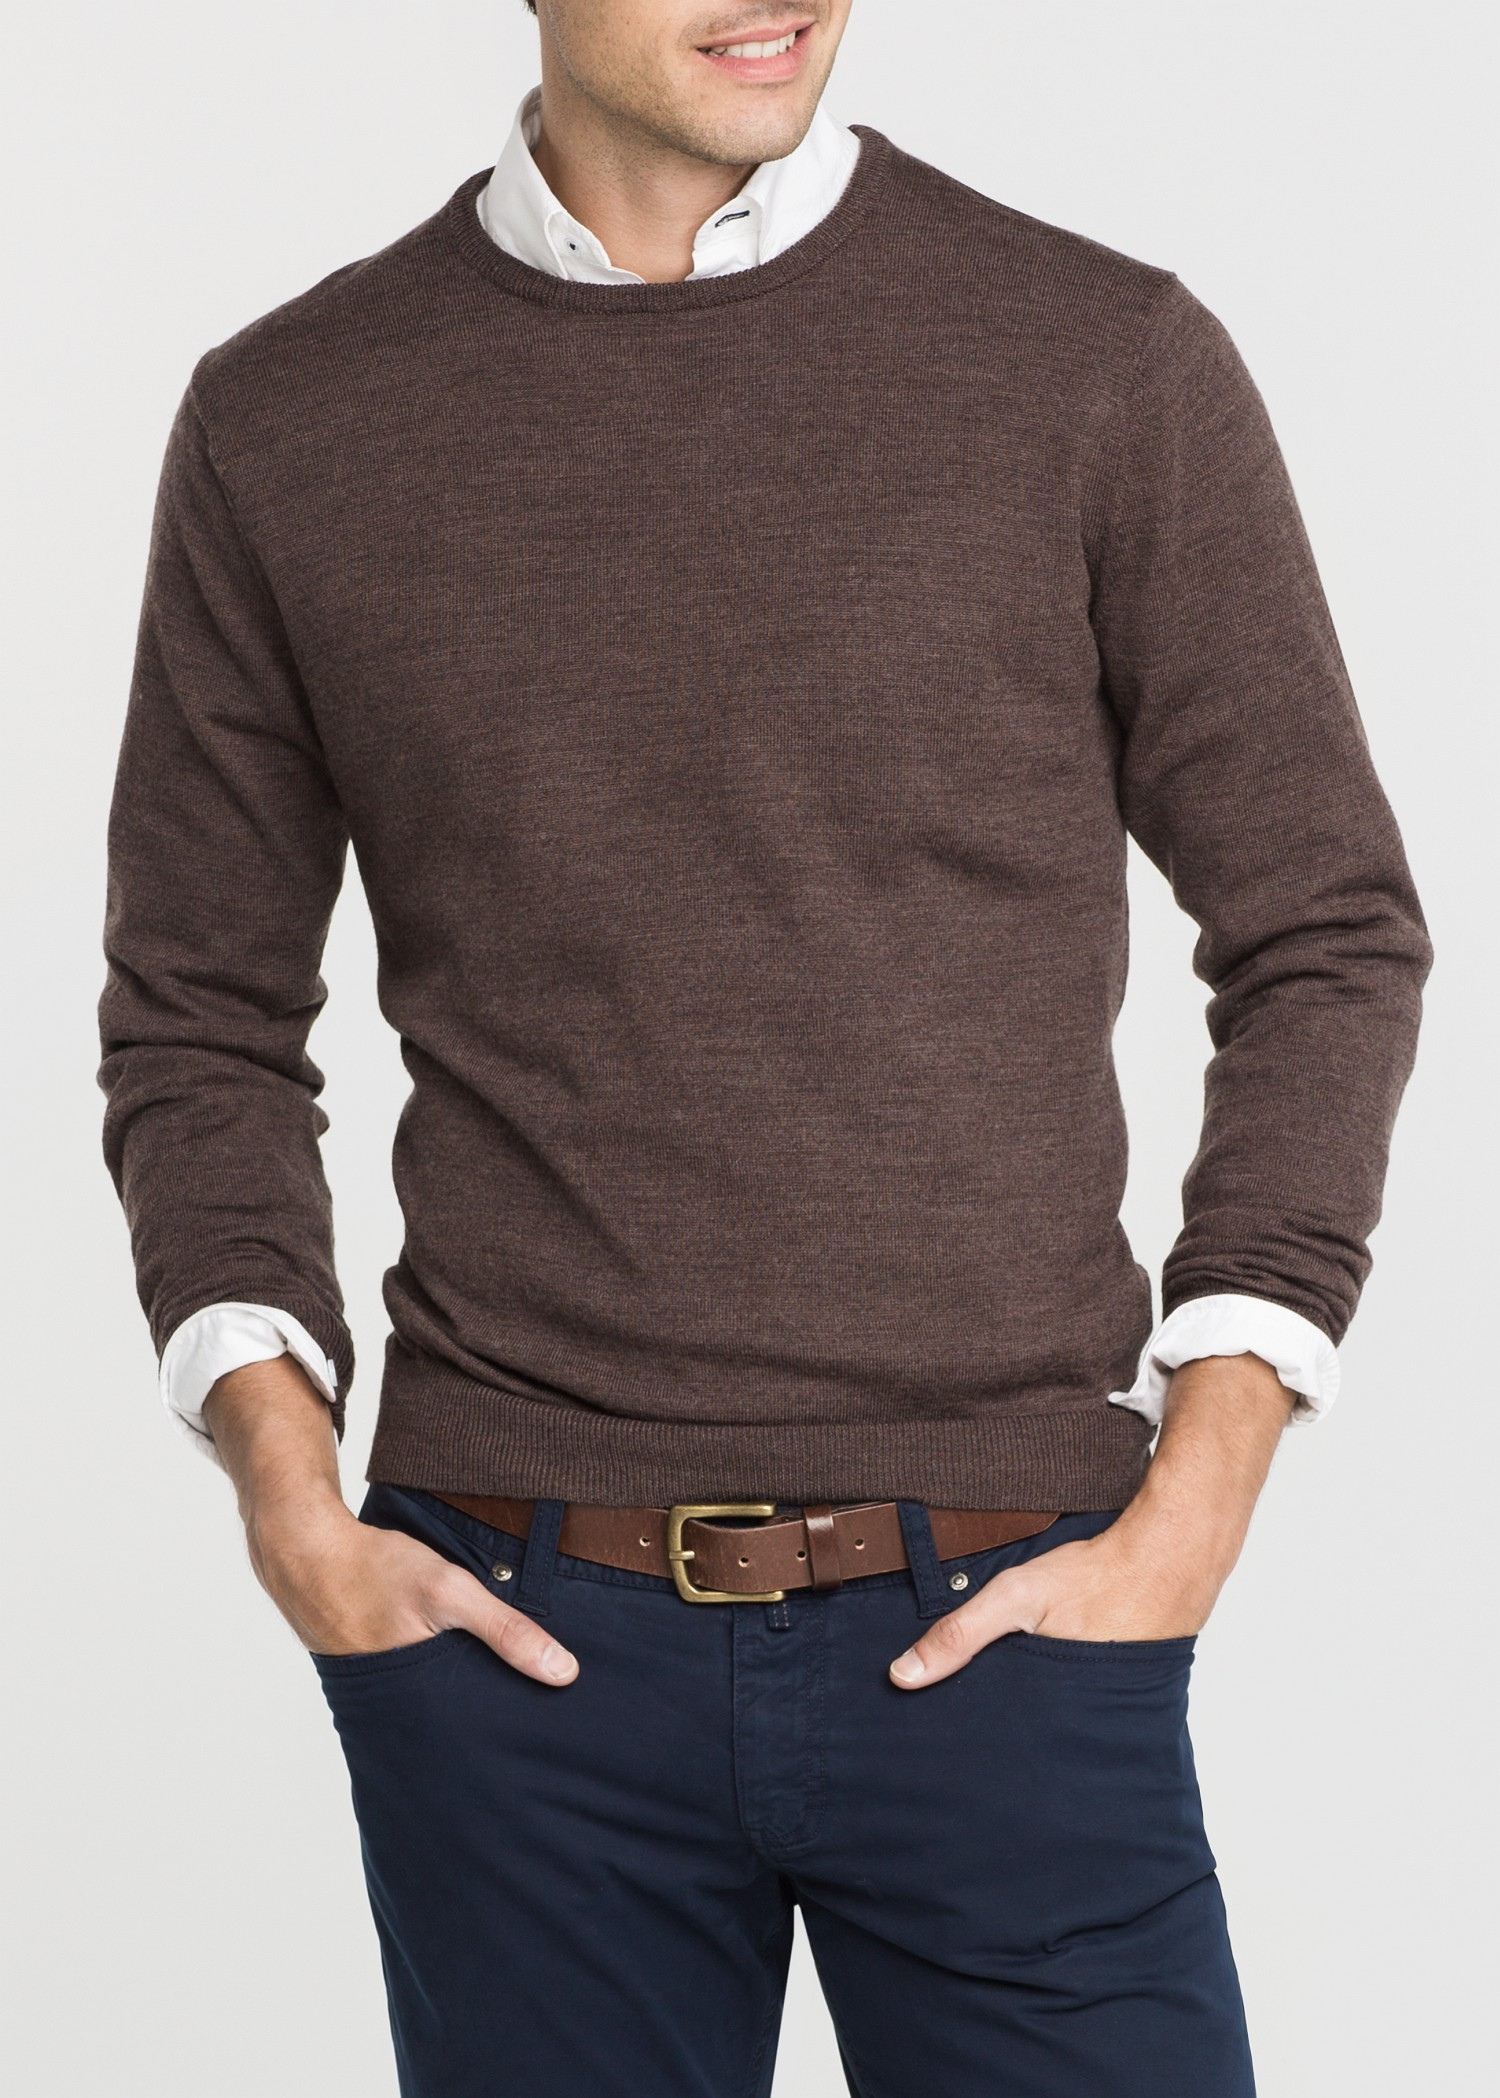 Mango Elbow Patch Wool Sweater in Brown for Men | Lyst